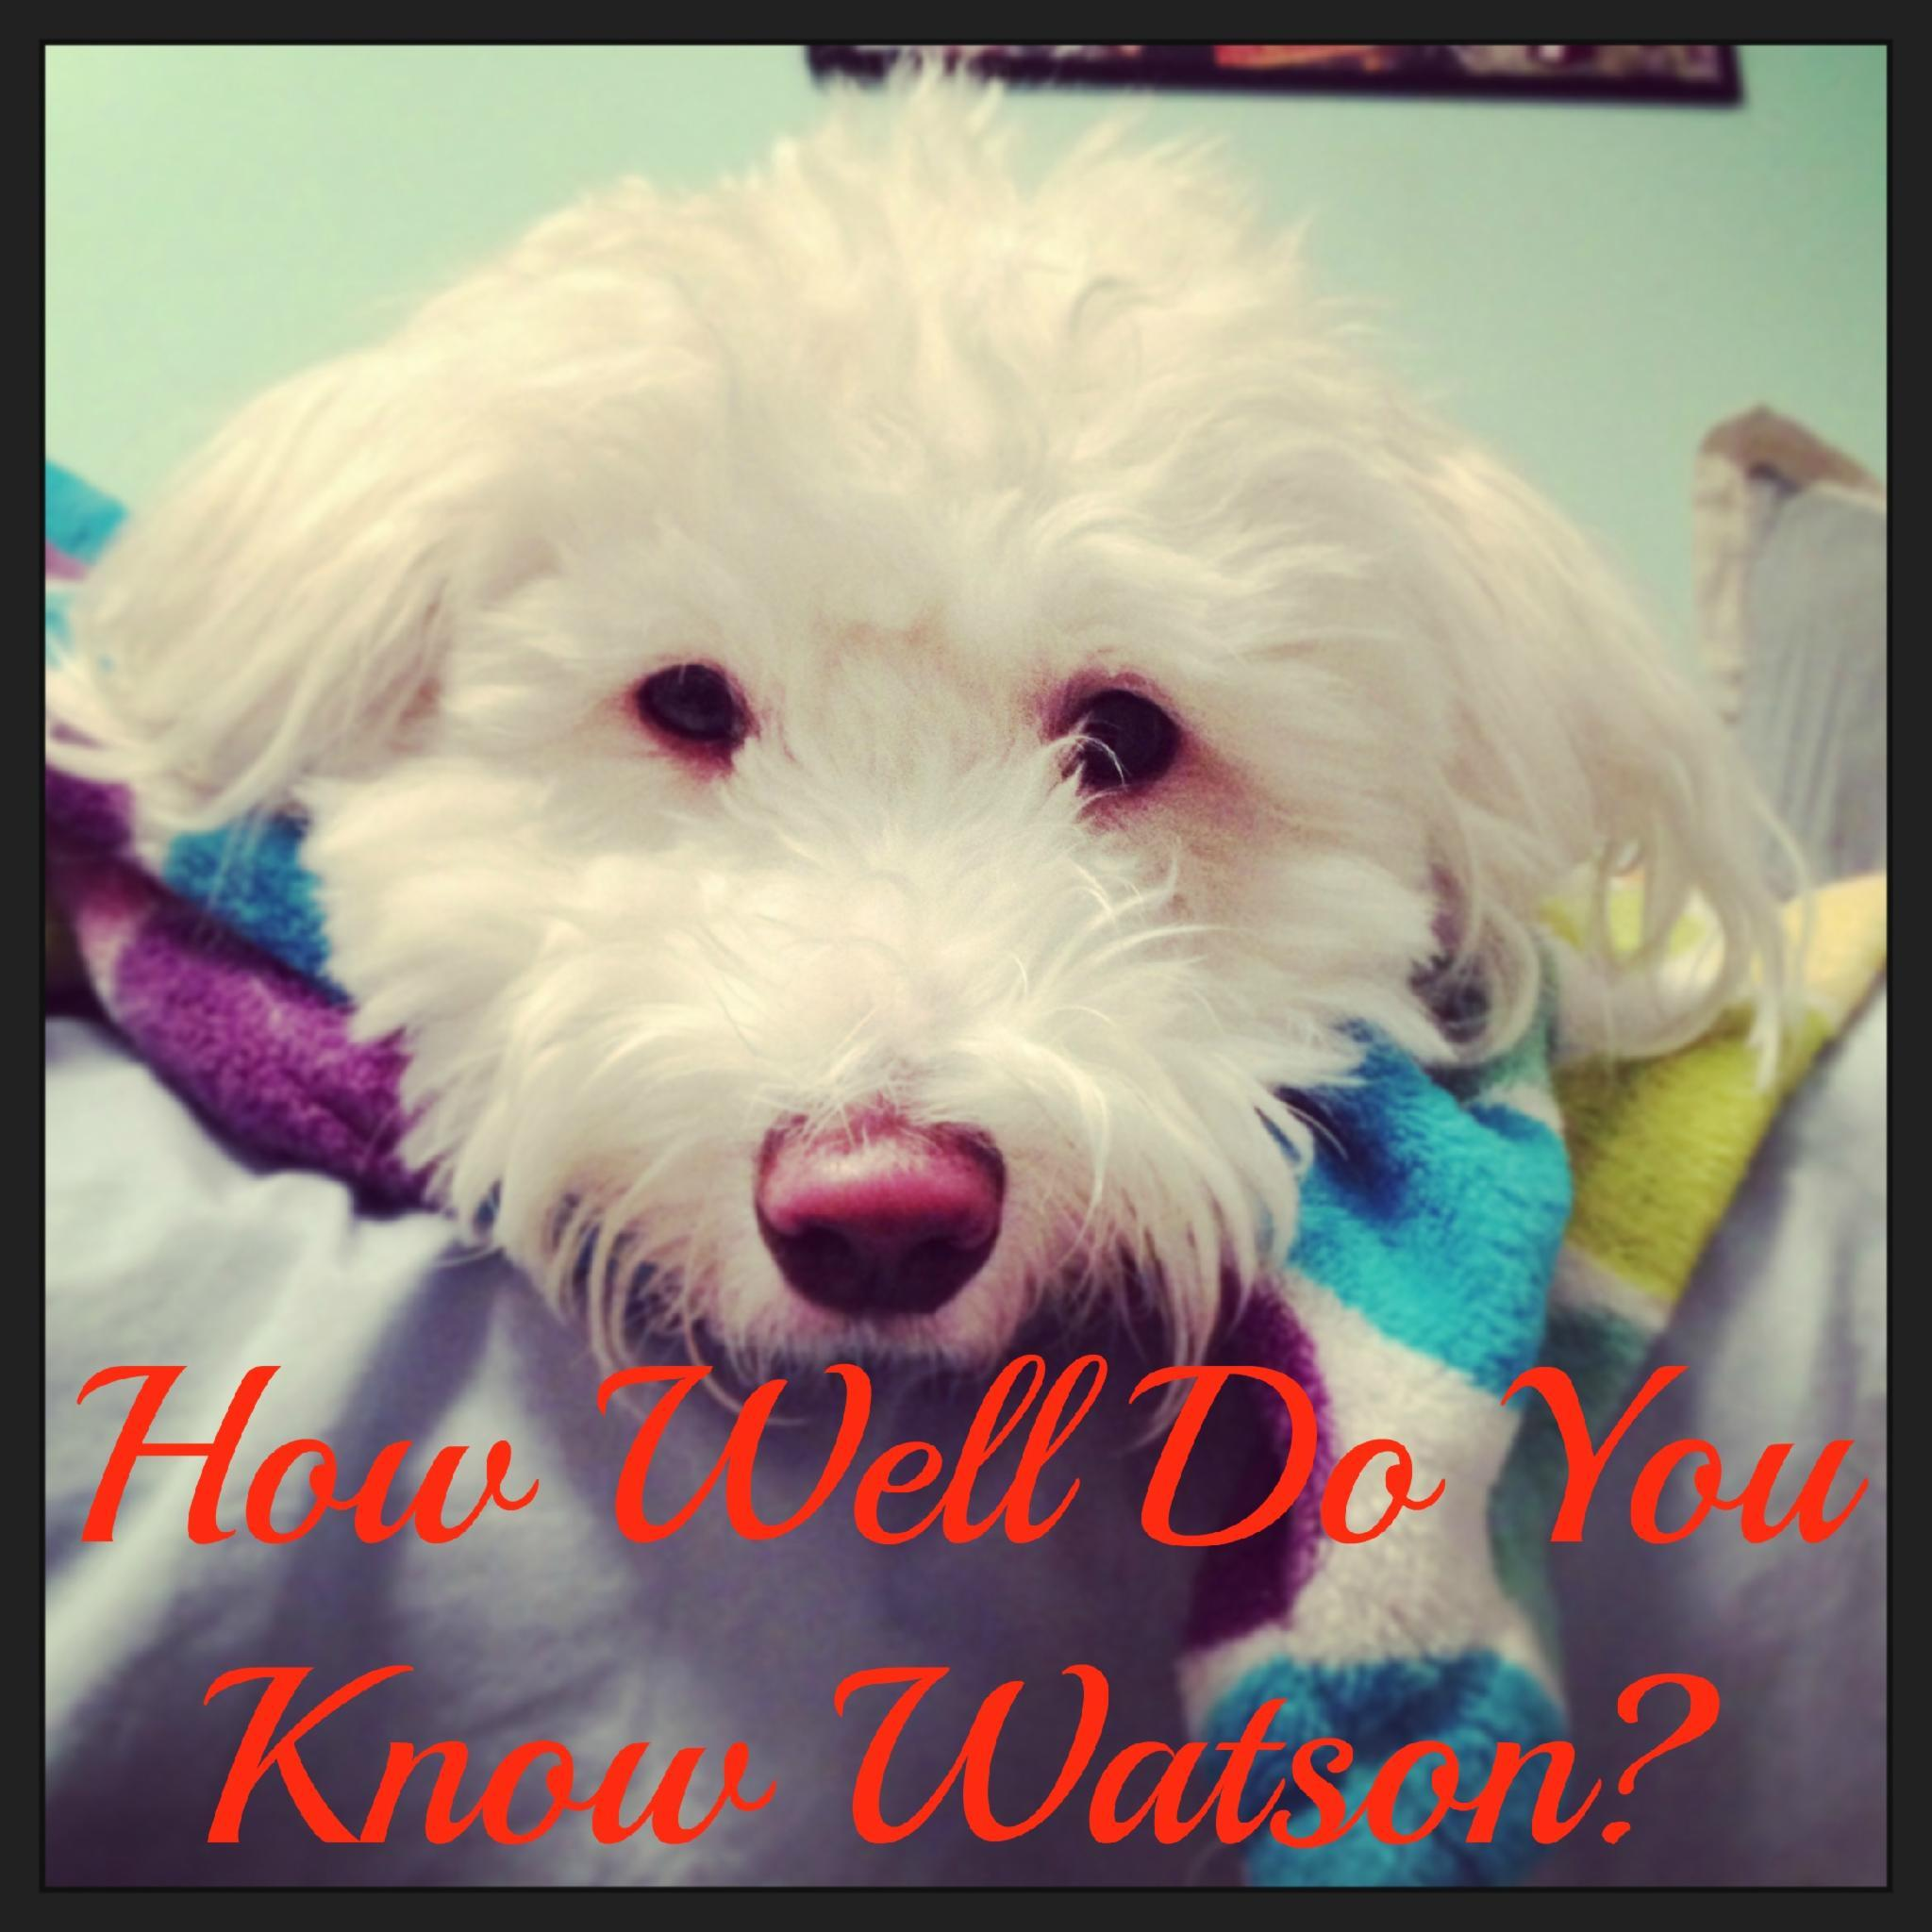 Do You Really Know Watson?